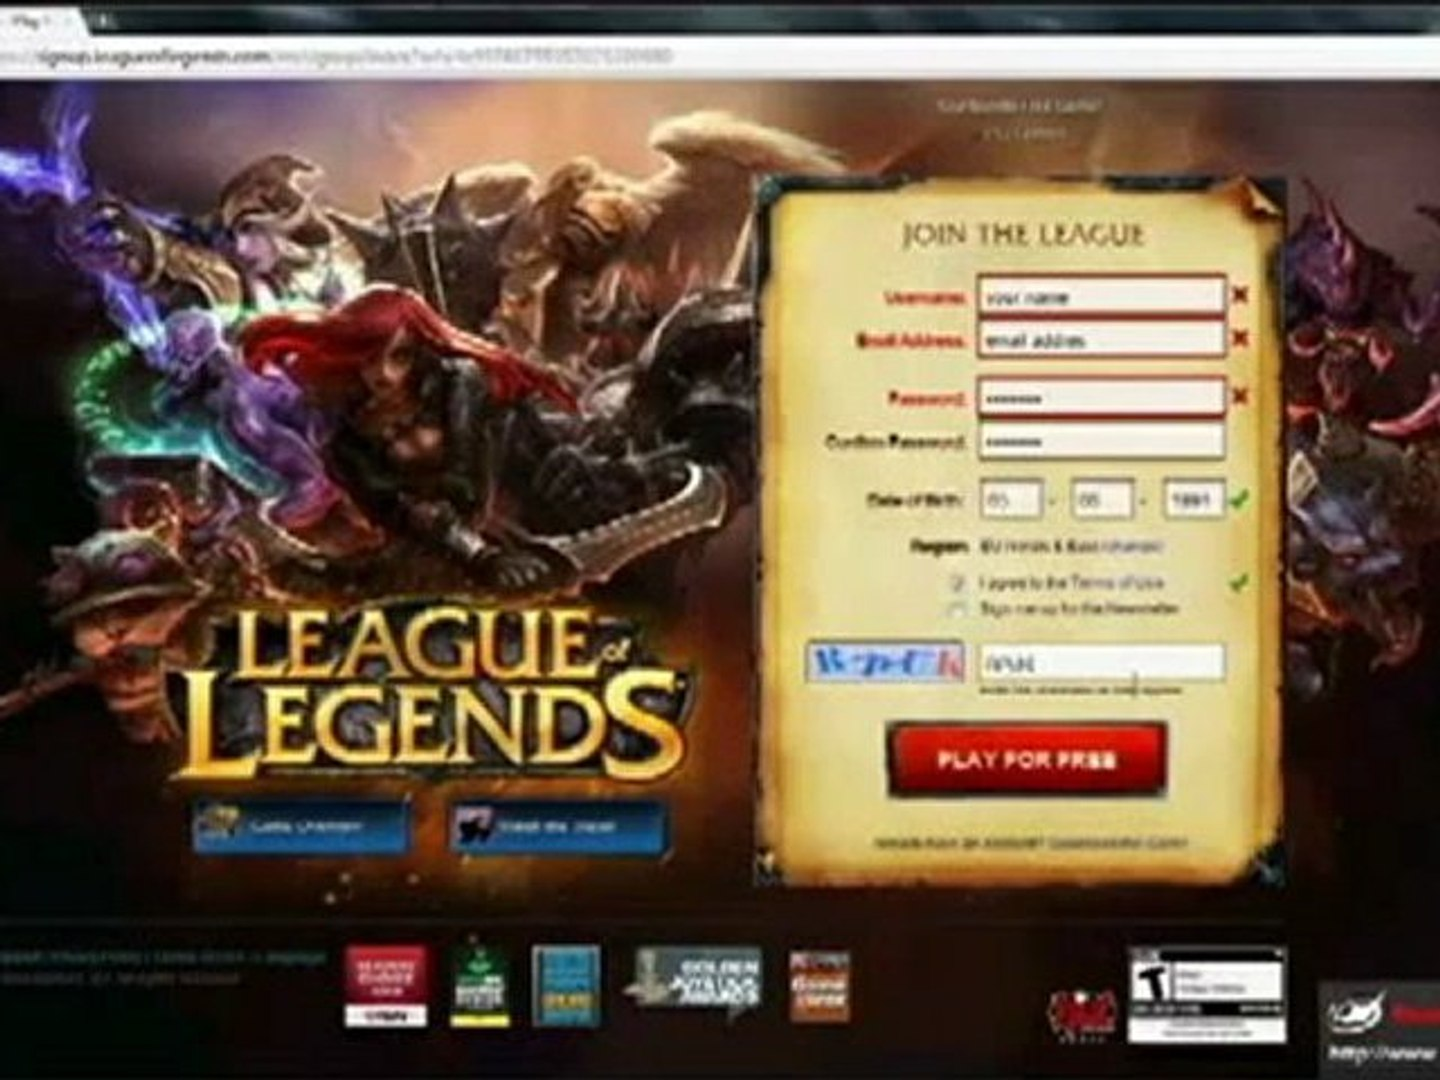 League of legends Hack 2012 (free 50000 RP and 30000 IP) works 100%